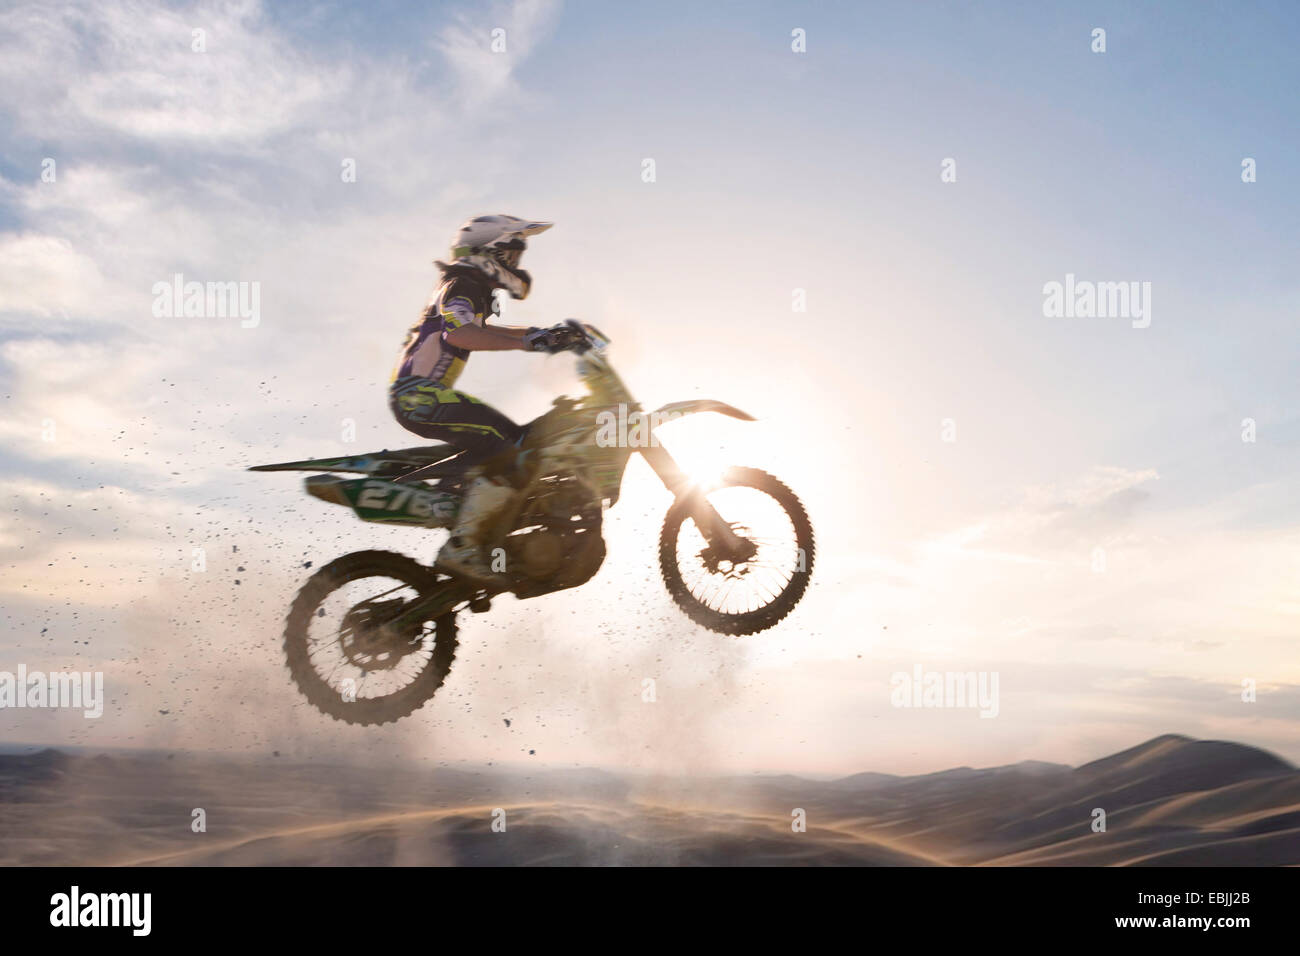 Silhouetted young male motocross racer jumping over mud track - Stock Image